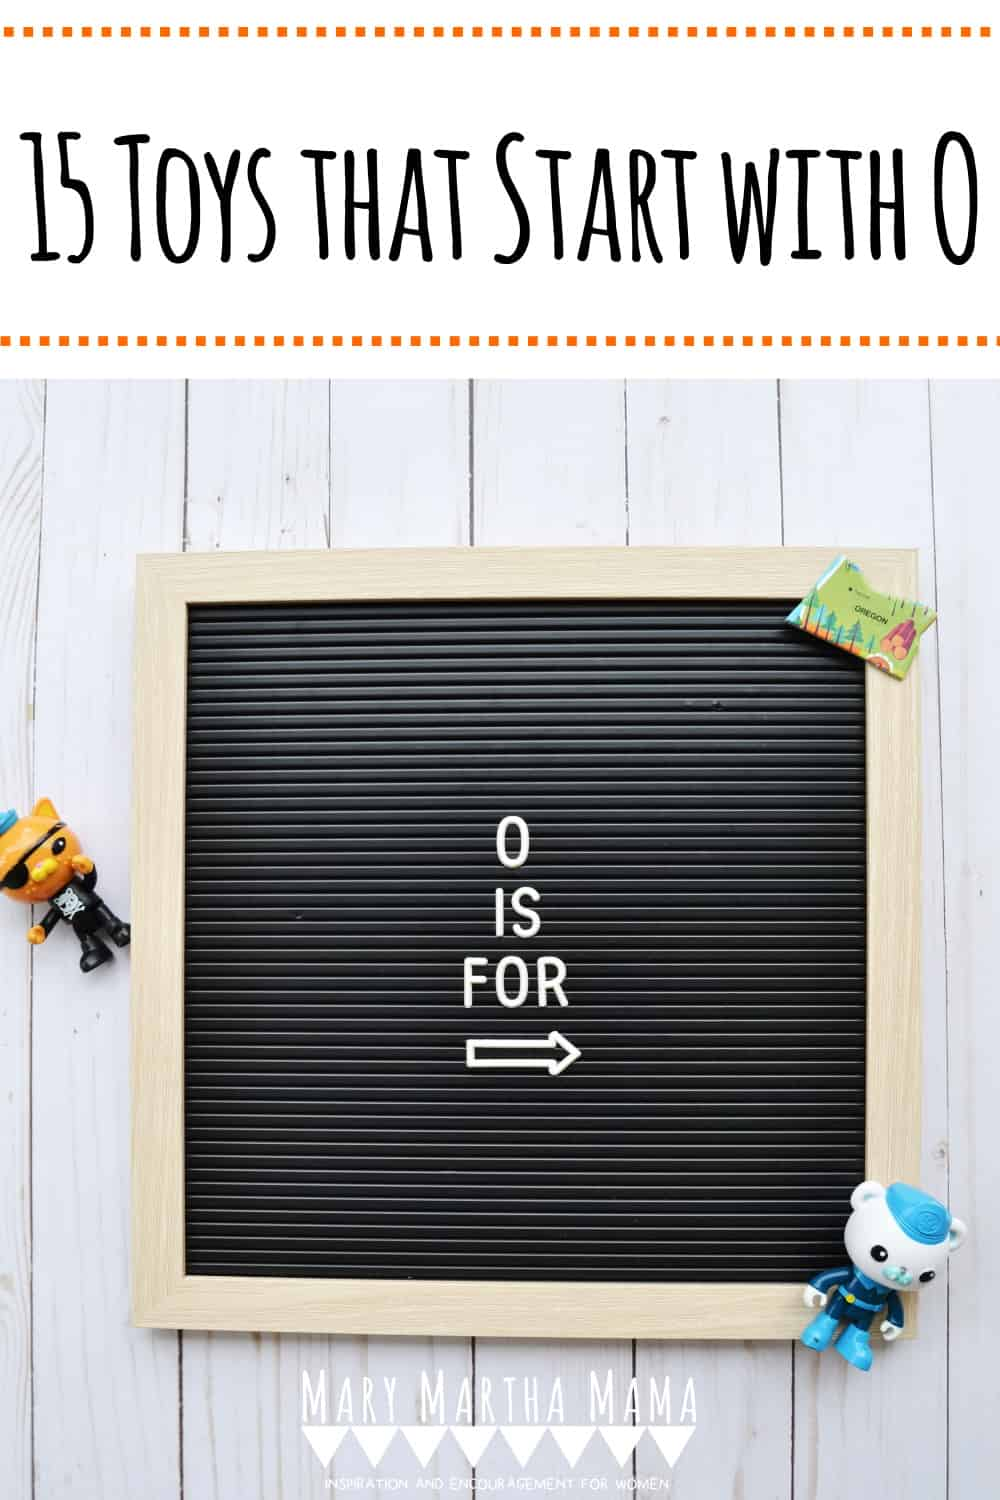 If you have a kiddo with a letter of the week show and tell then you are going to want to check out this list of 15 Toys that Start with O.